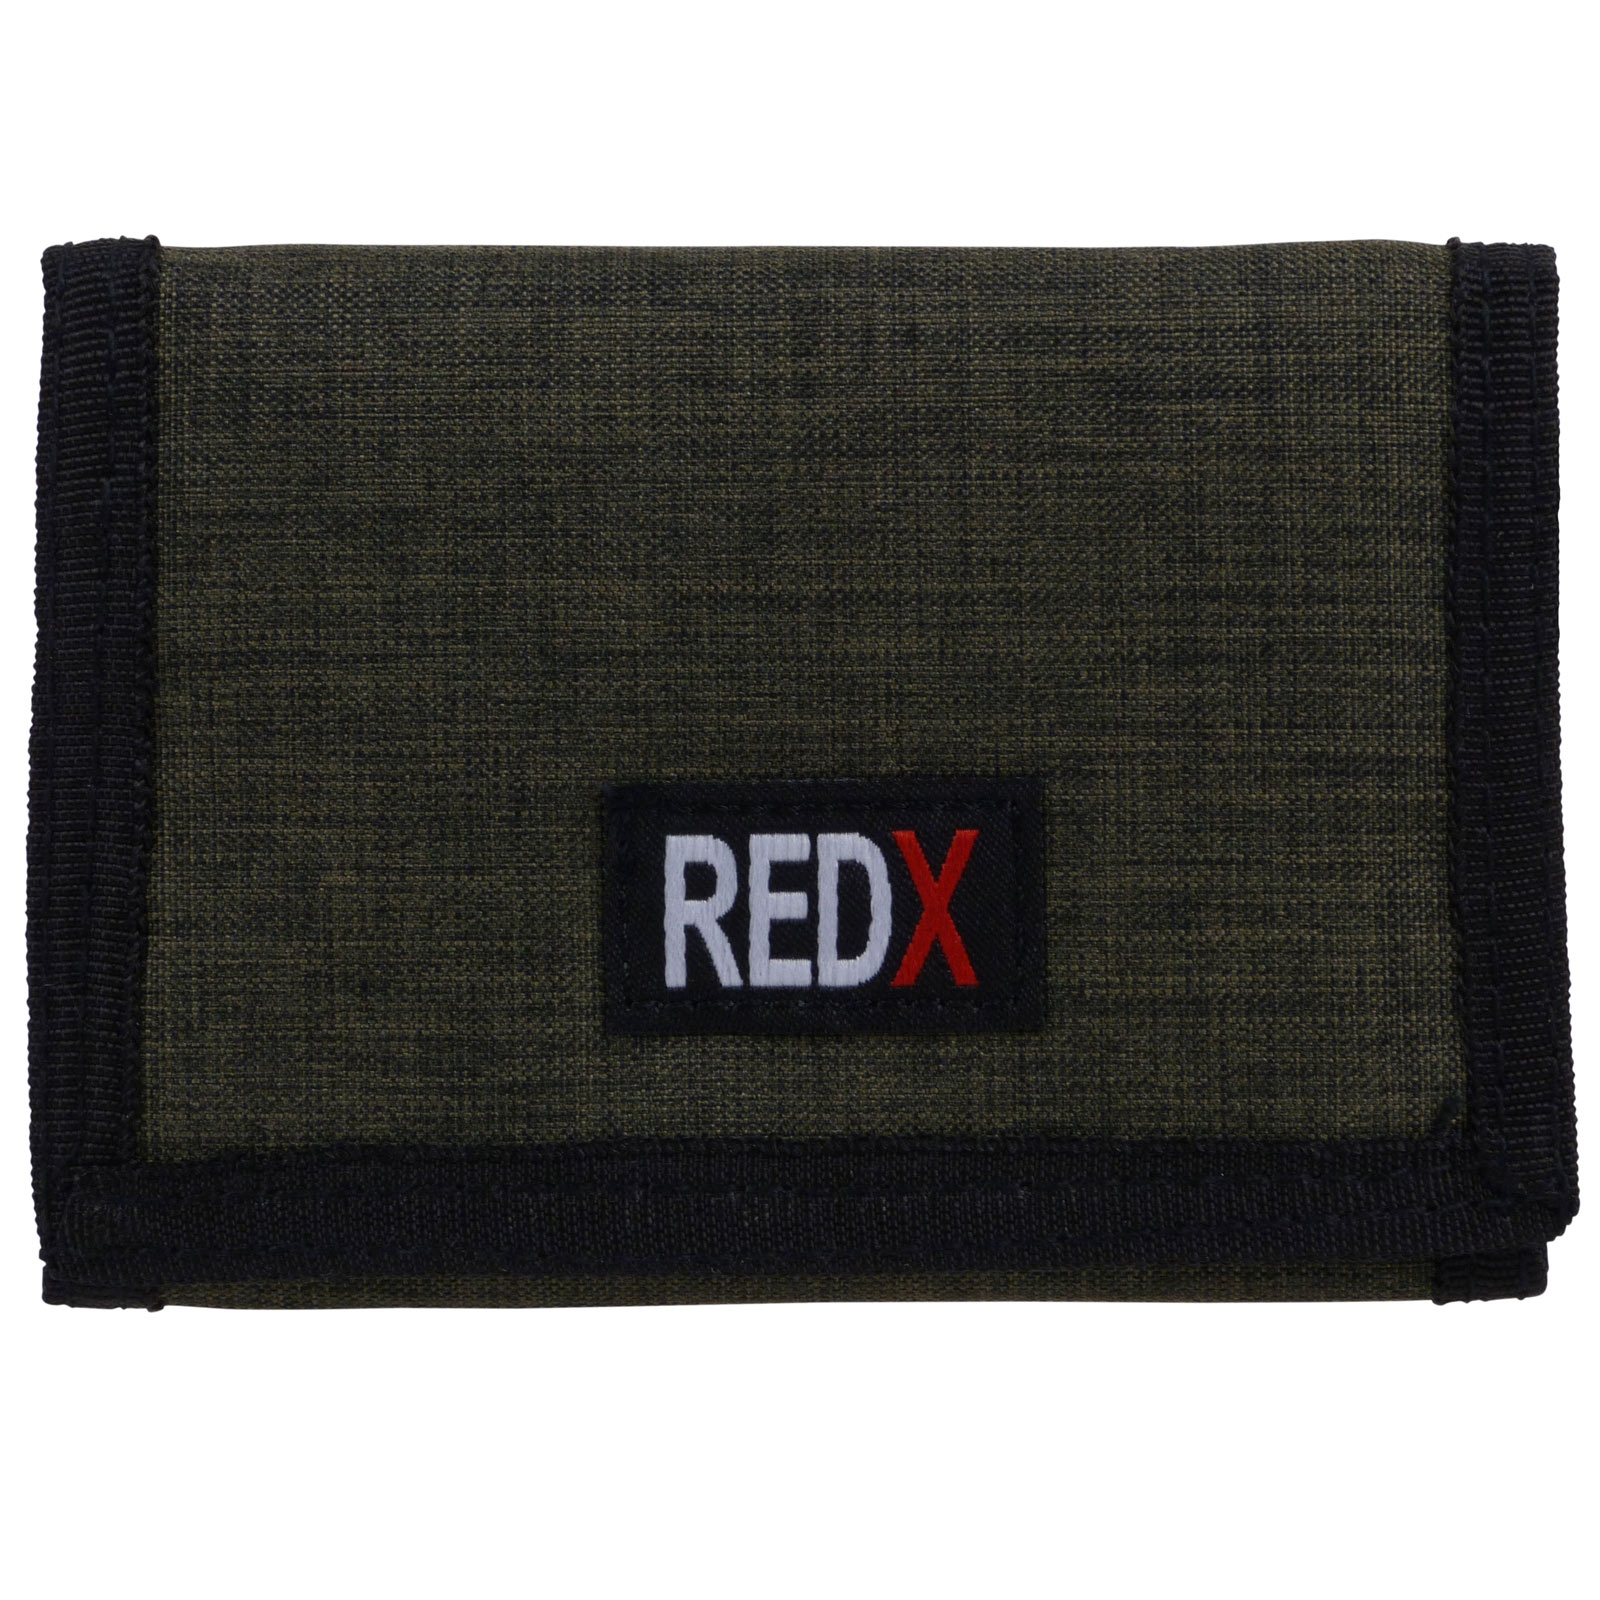 thumbnail 6 - Red-X-Mens-Boys-TriFold-Sports-Card-Coin-Wallet-Canvas